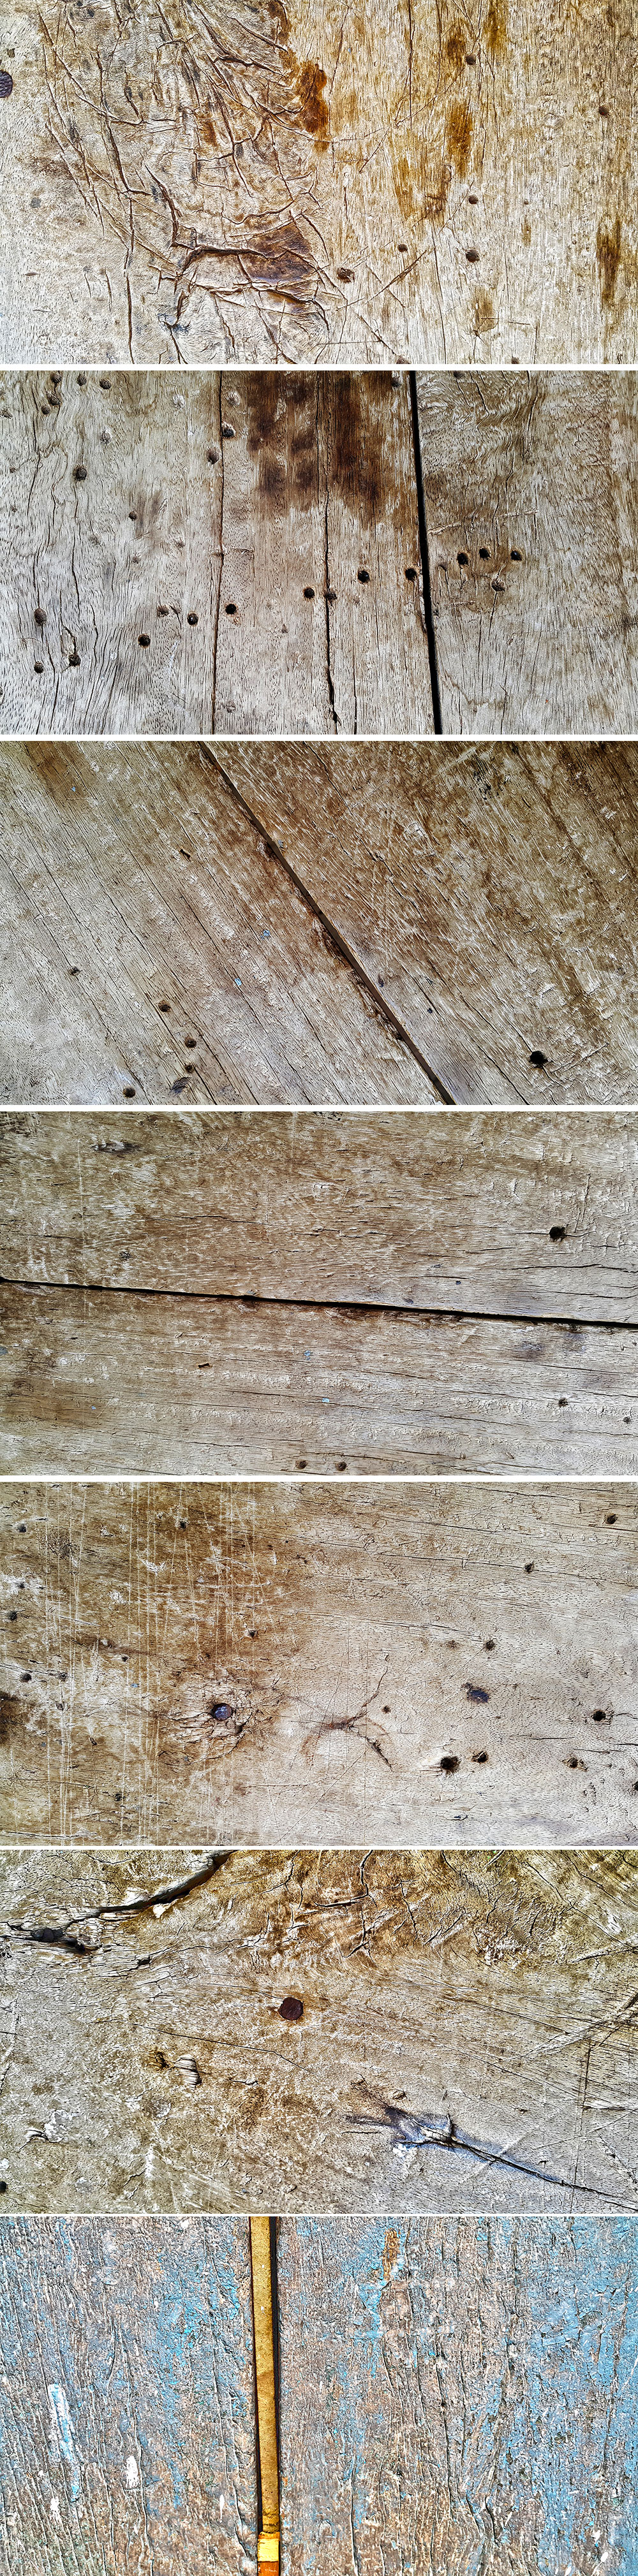 http://www.graphicsfuel.com/wp-content/uploads/2016/03/Free-Wood-Textures-Full-View.jpg